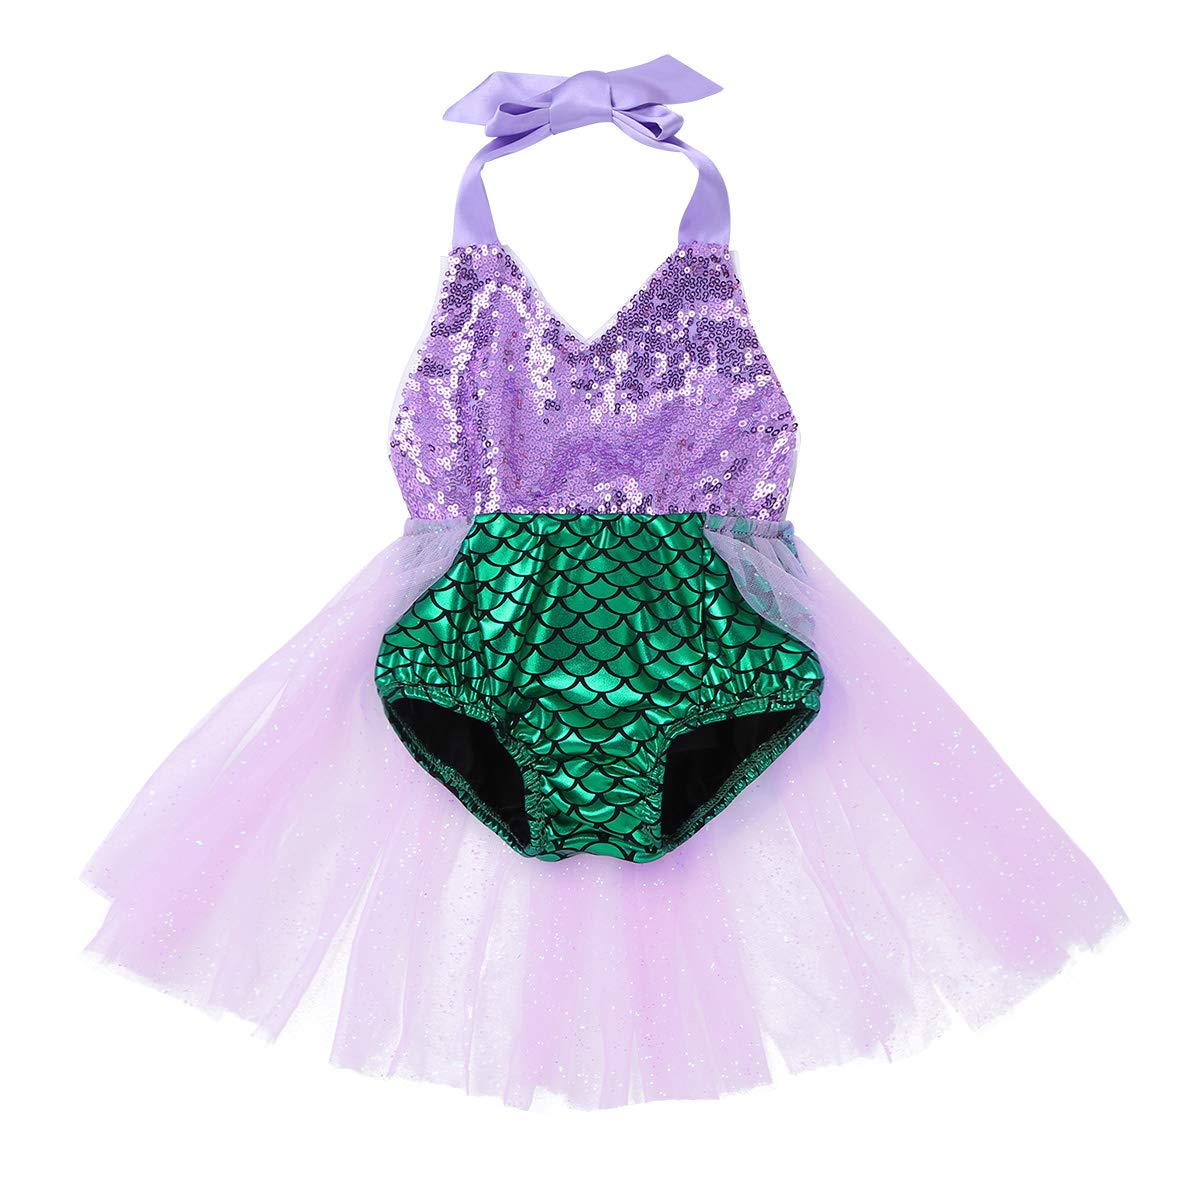 inhzoy Infant Little Girls Swimmable Mermaid Princess Tutu Skirted Bikini Swim Bathing Suit Fancy Dress Up Costumes Green 0-3 Months